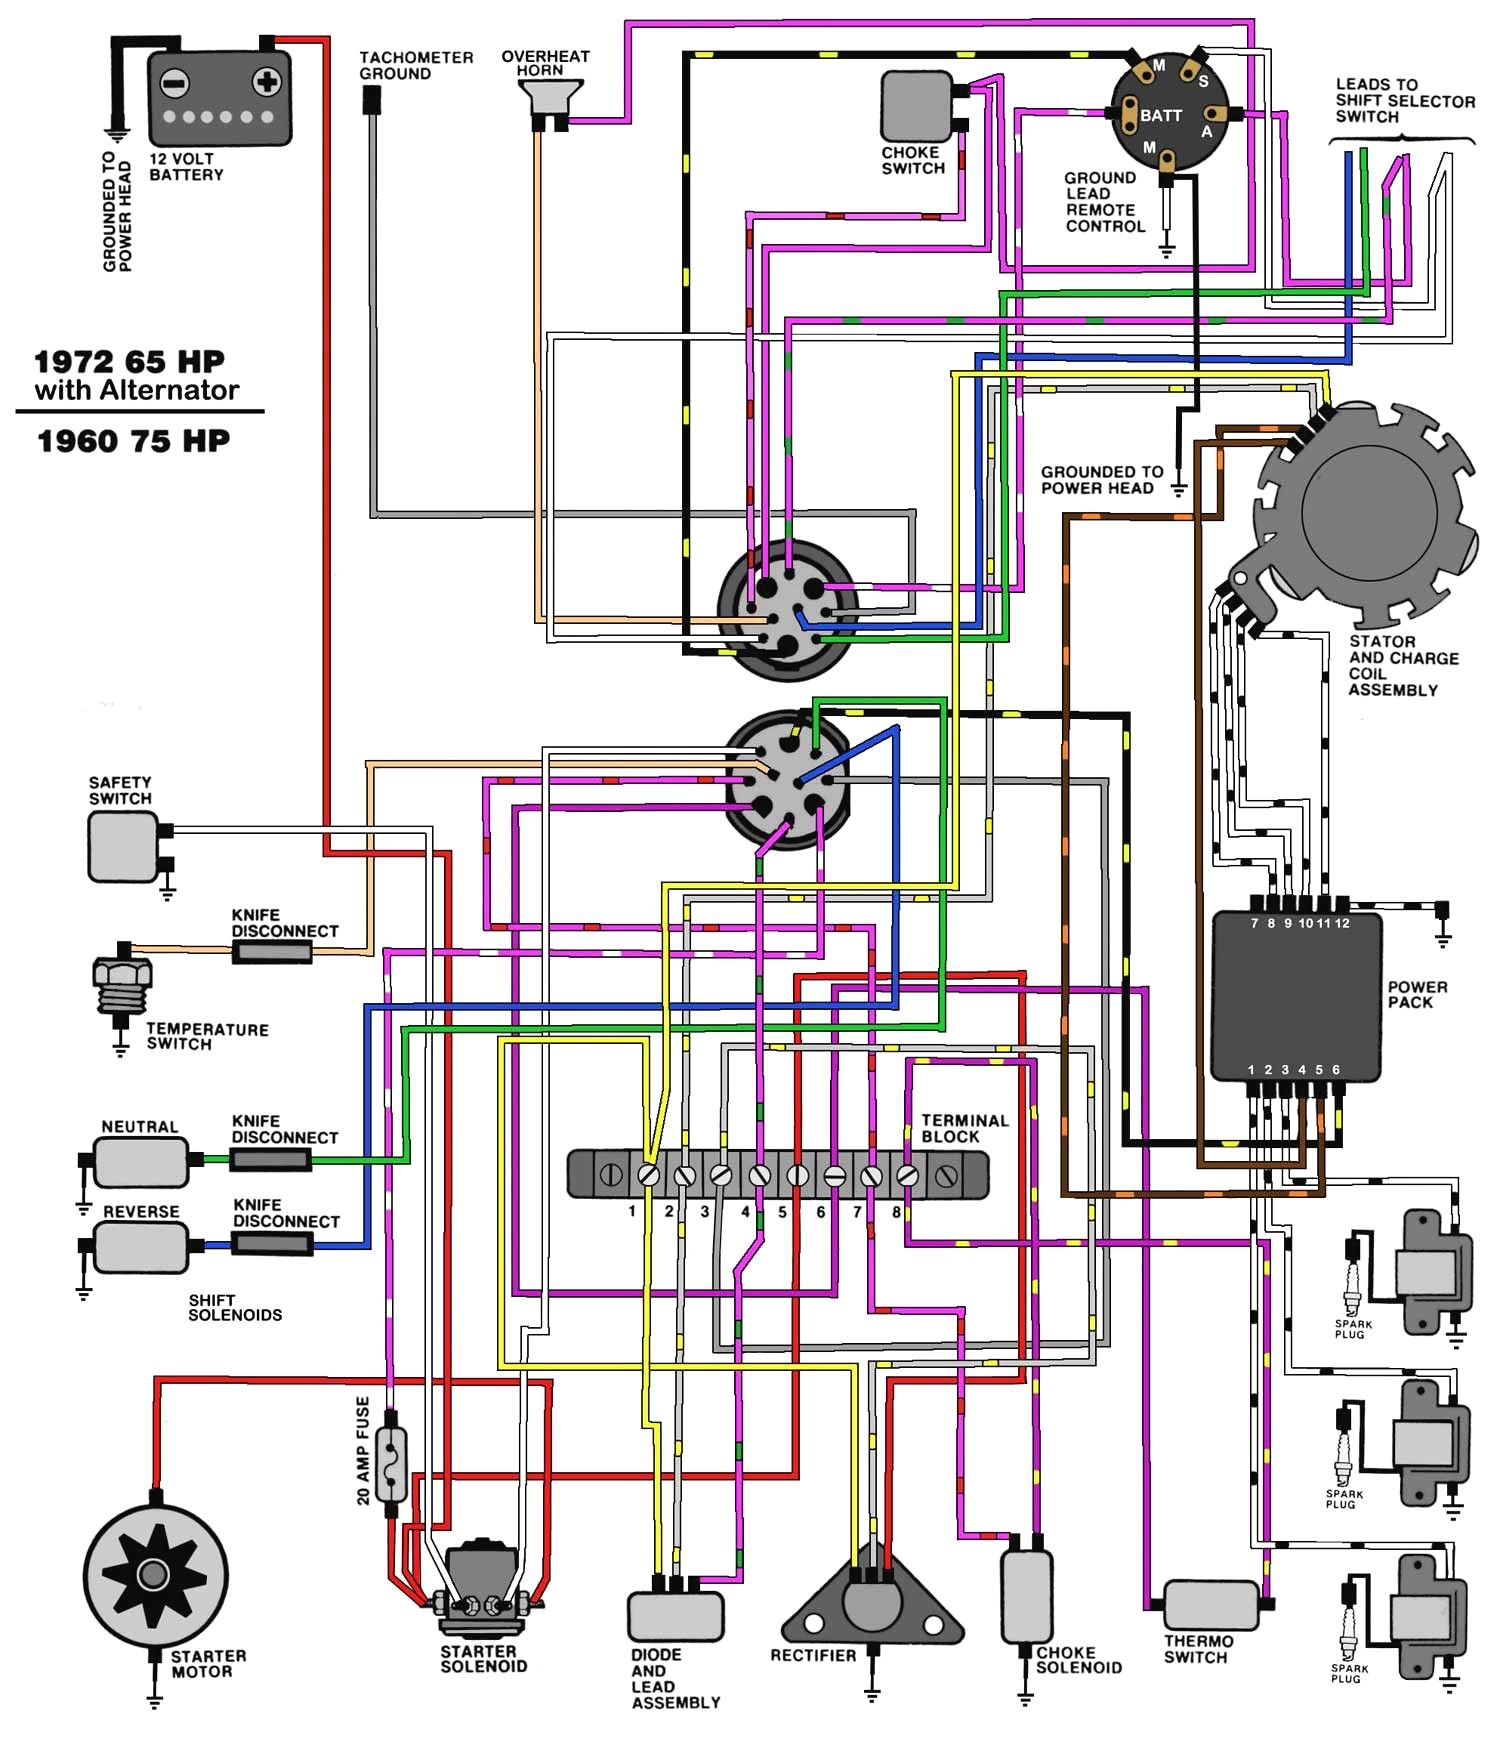 65 Hp Mercury Outboard Motor Wiring Diagram Diagrams Schematics For |  Electrical wiring diagram, Outboard, Diagram Pinterest